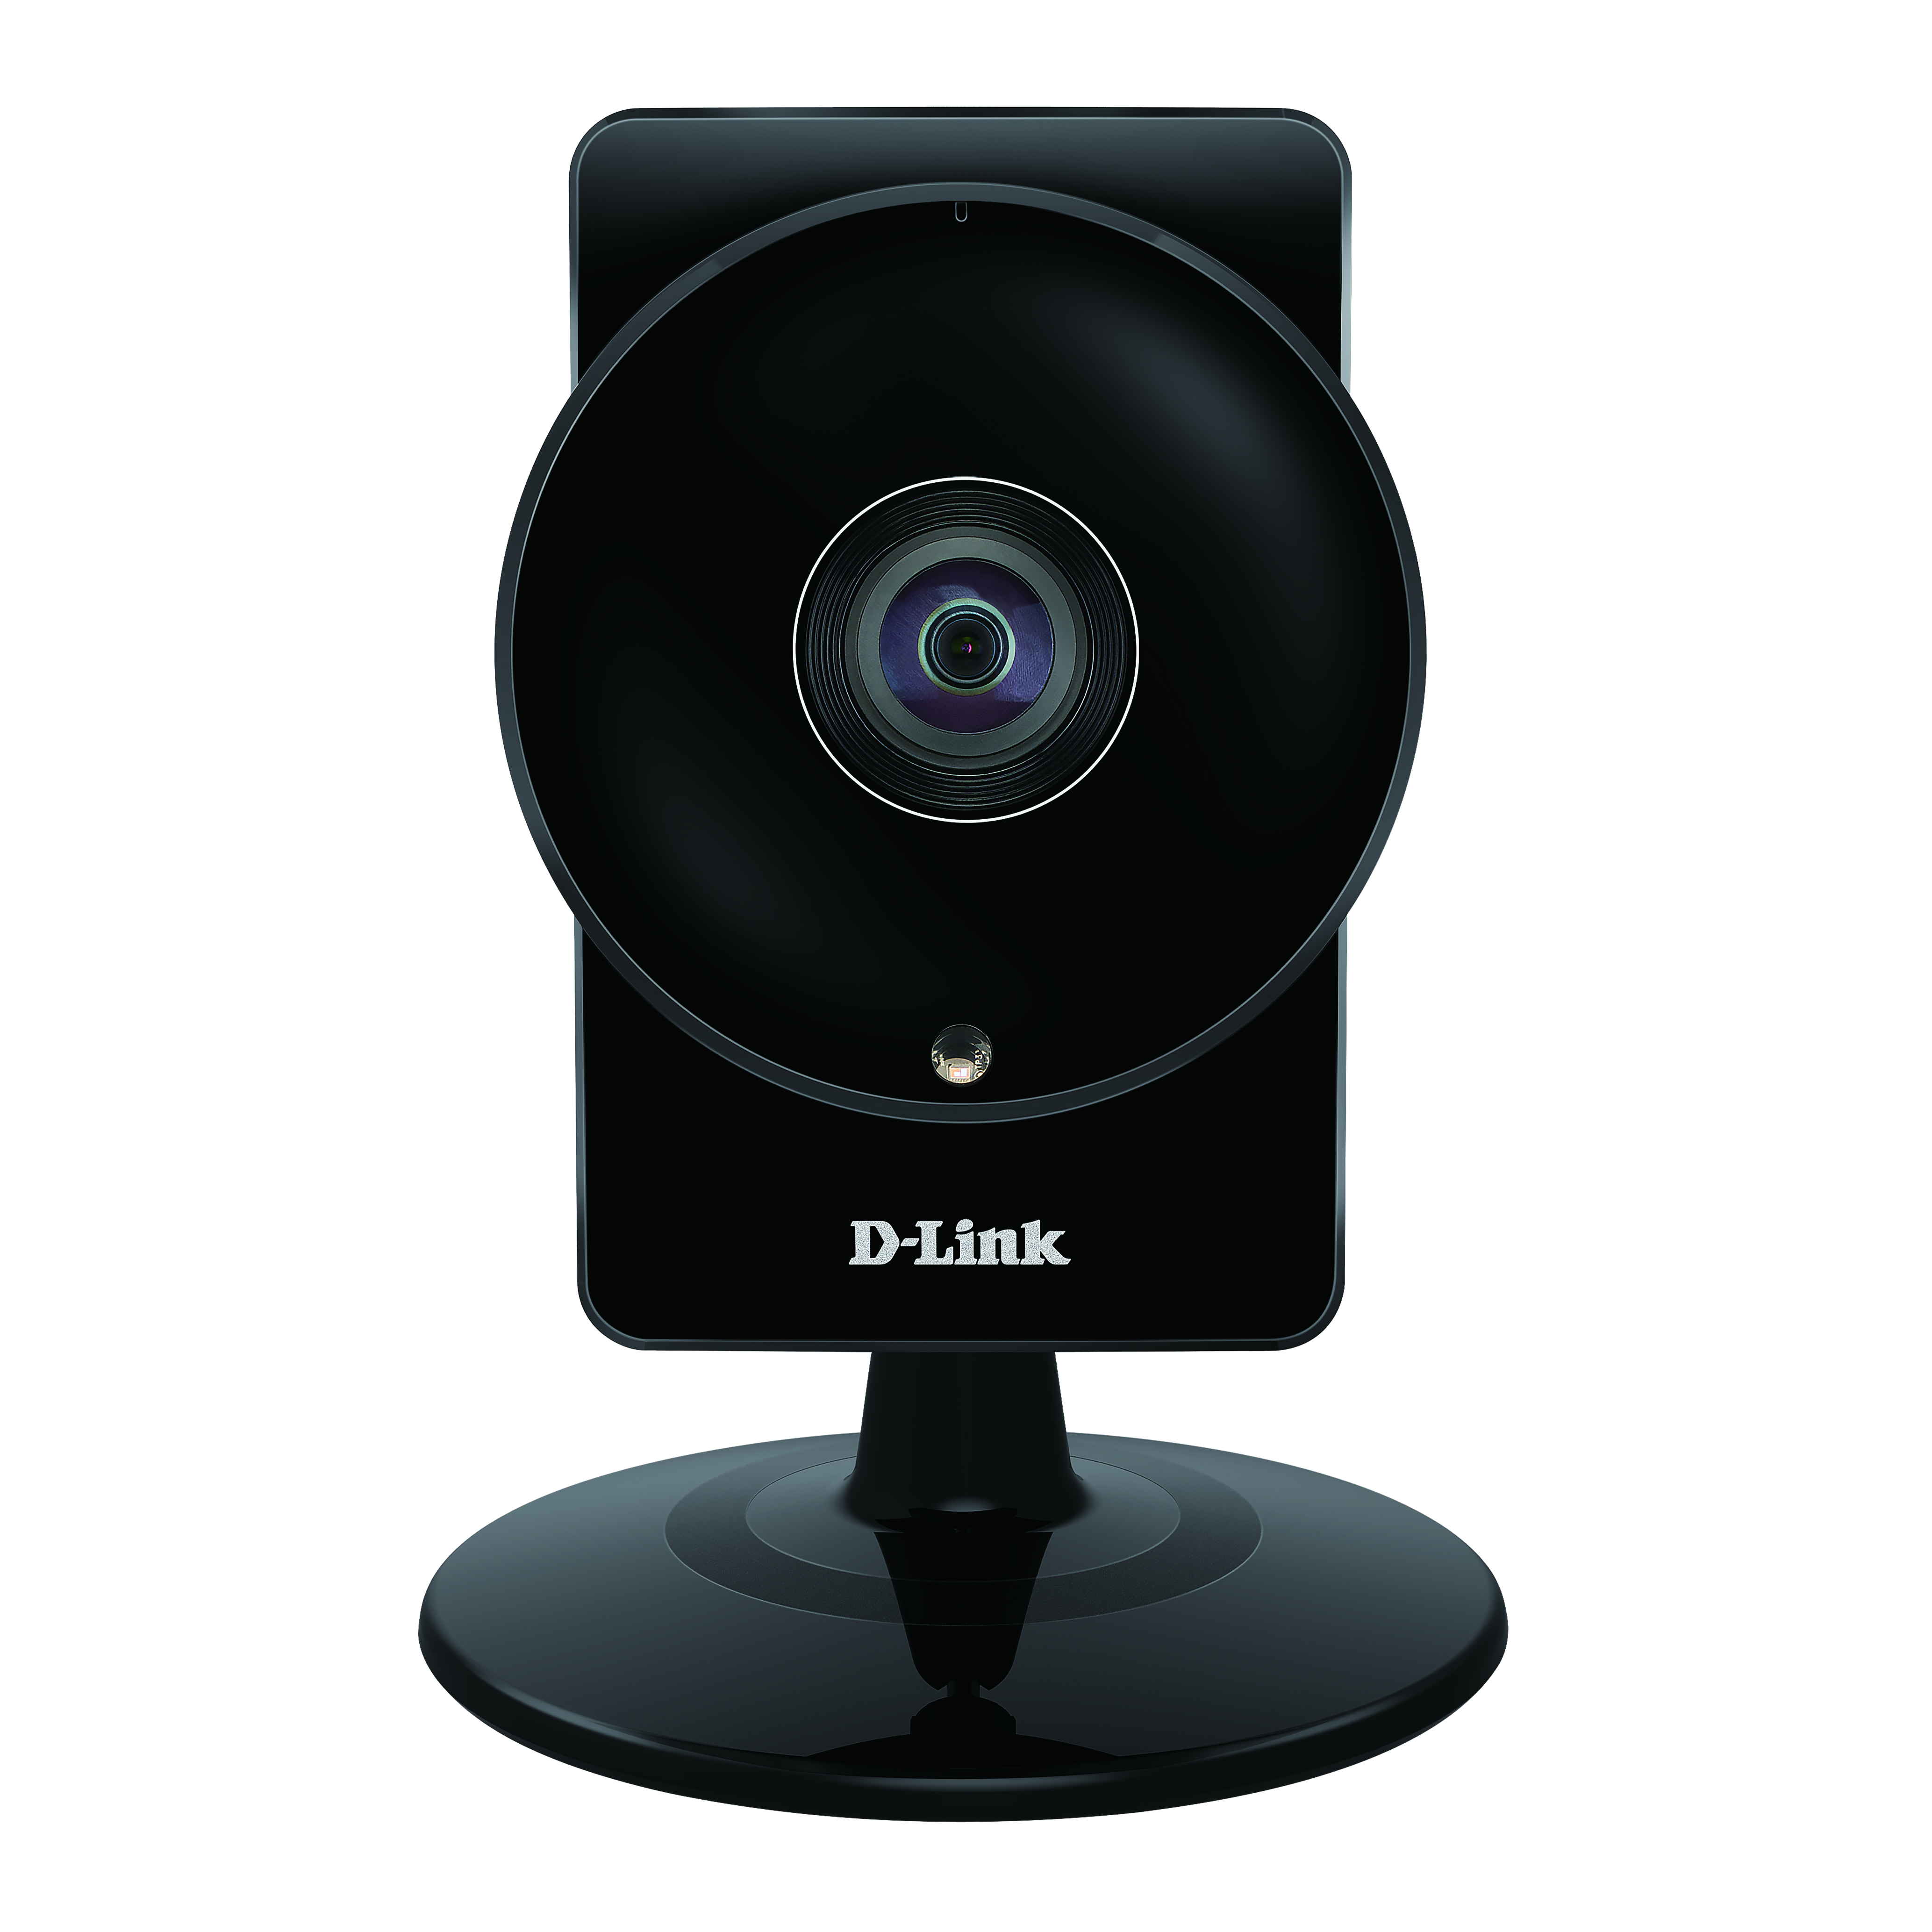 196097 d link%20 %20wide%20eye%20camera%20 %20dcs 960l%20 %2035cm%20 %20300dpi 98e602 original 1455890669